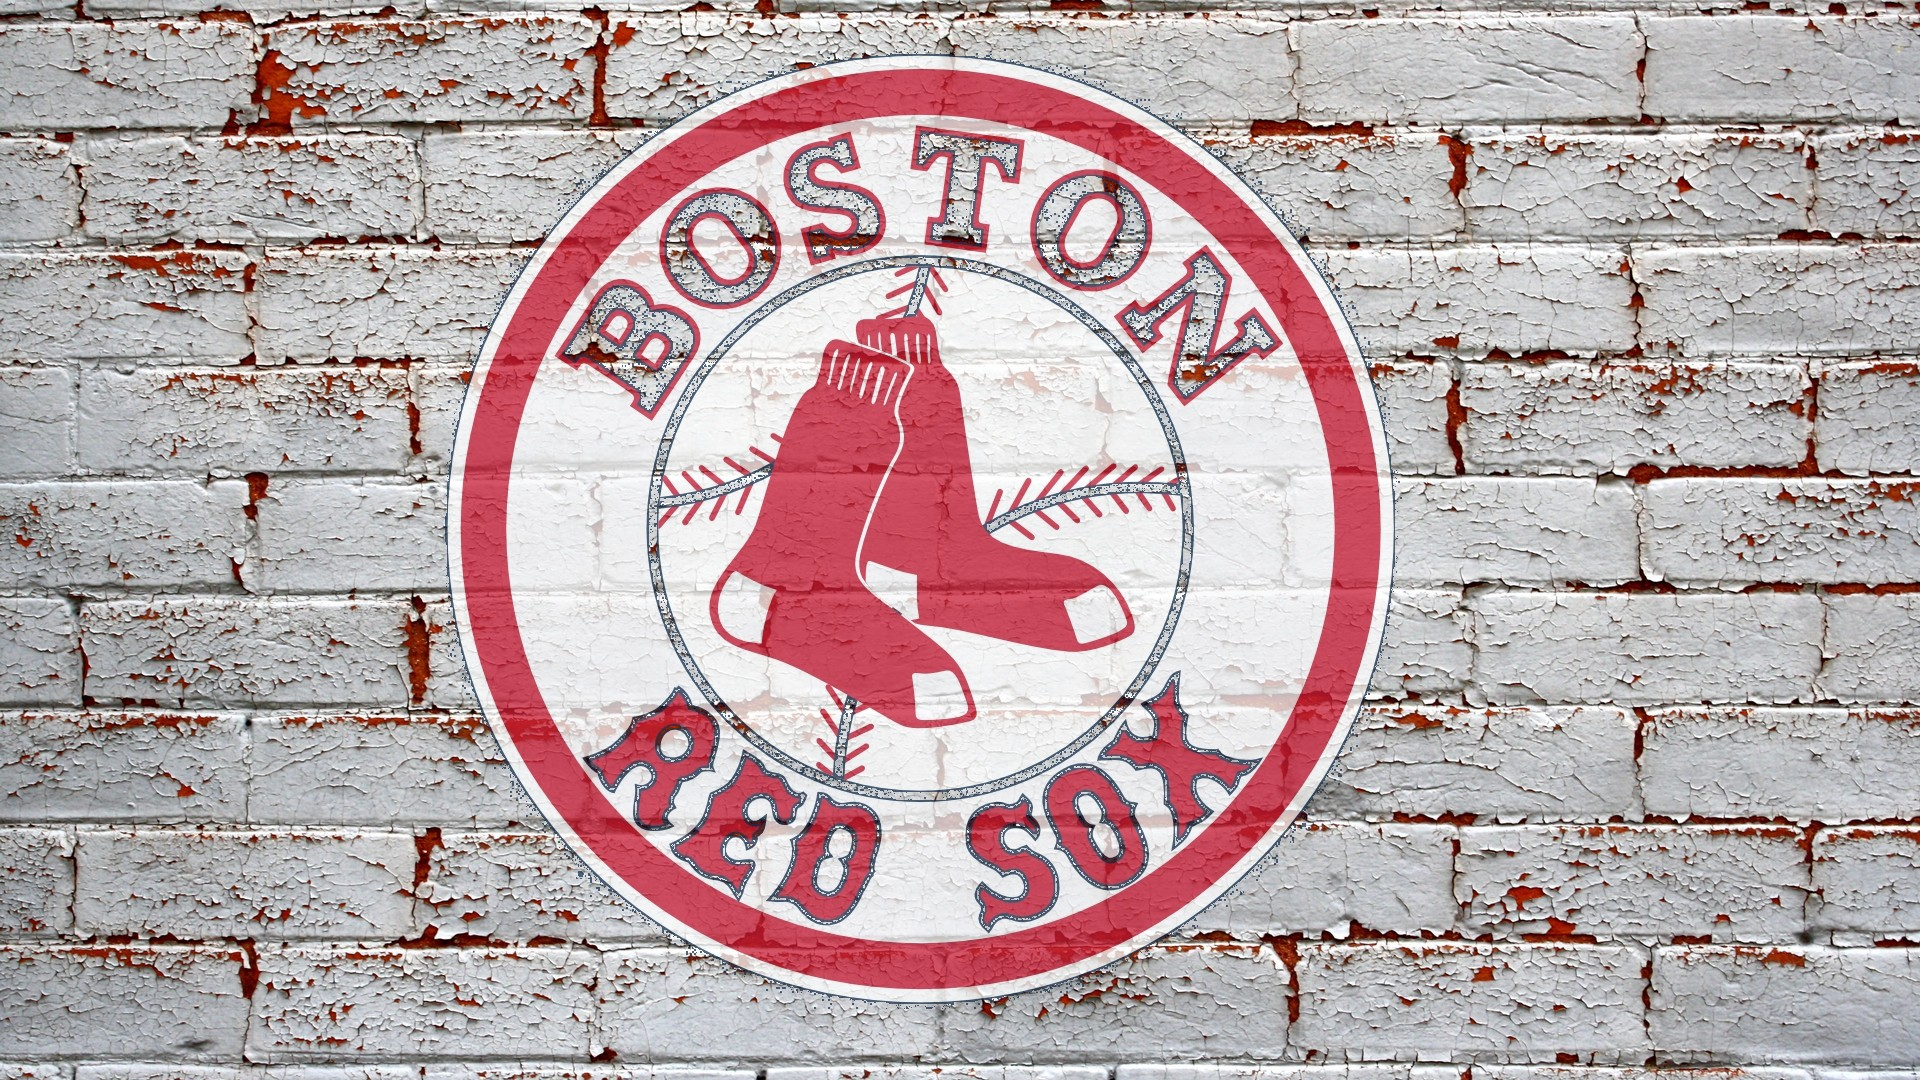 Boston Red Sox Logo on The Wall